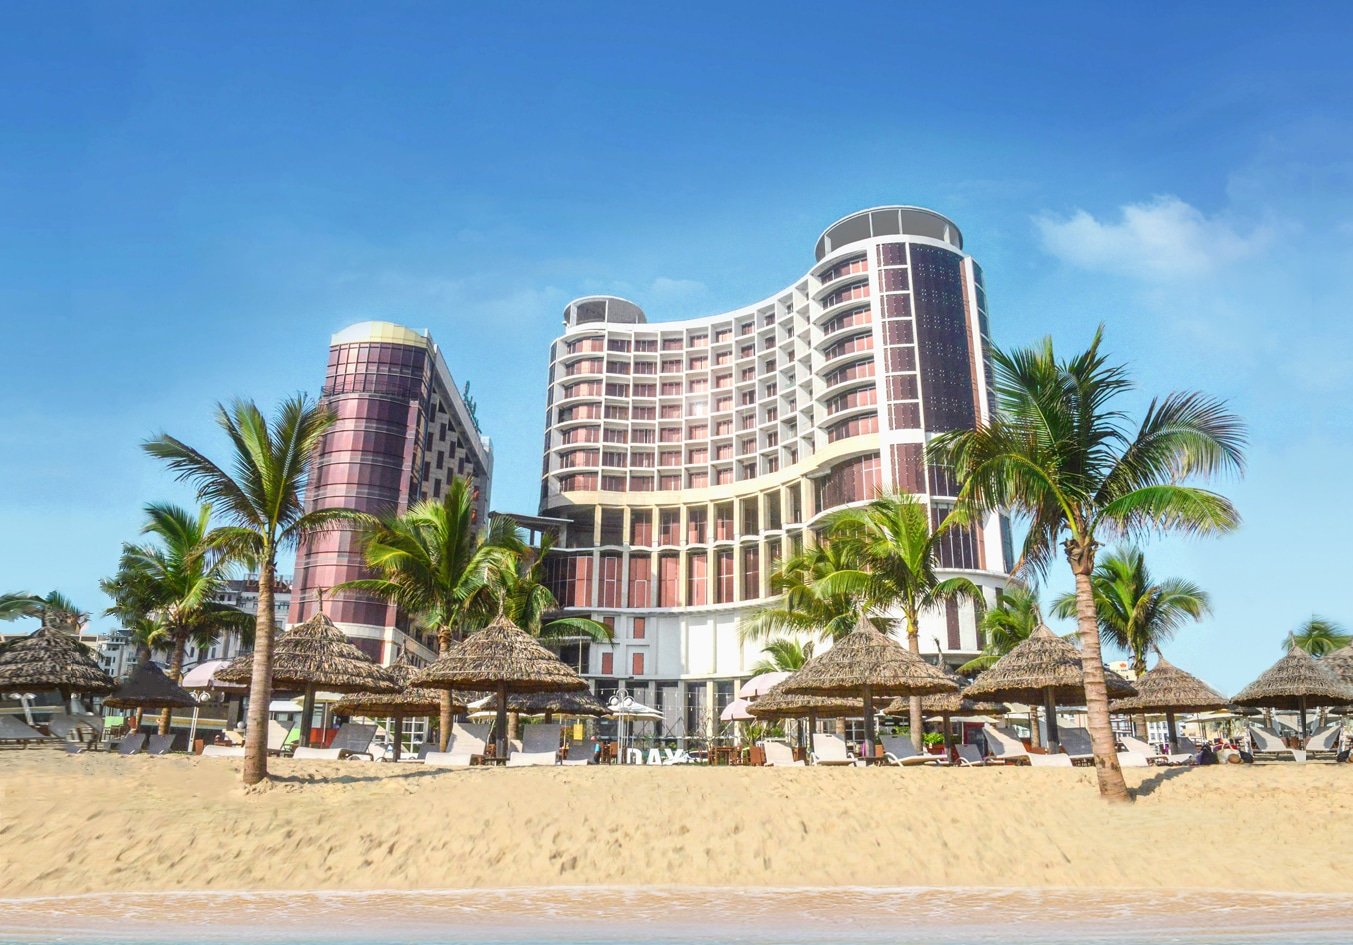 Holiday Beach Danang Hotel Resort Close To Hectic Downtown Which Was Voted One Of The Six Most Exquisite Beaches By Forbes Magazine